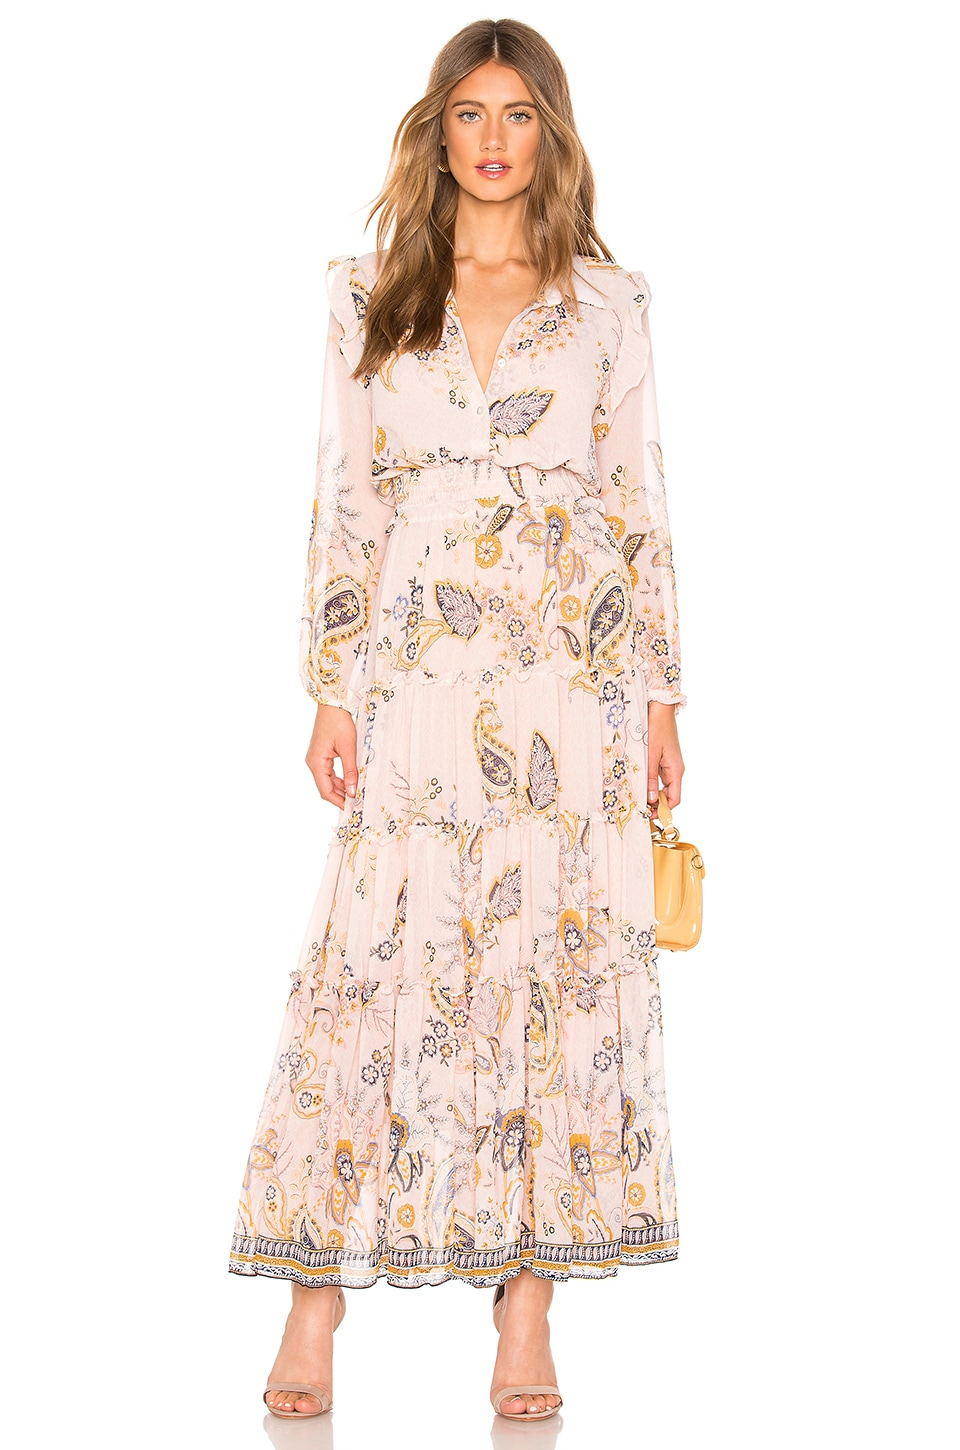 MISA Los Angeles Ahreana Dress in Pink Paisley